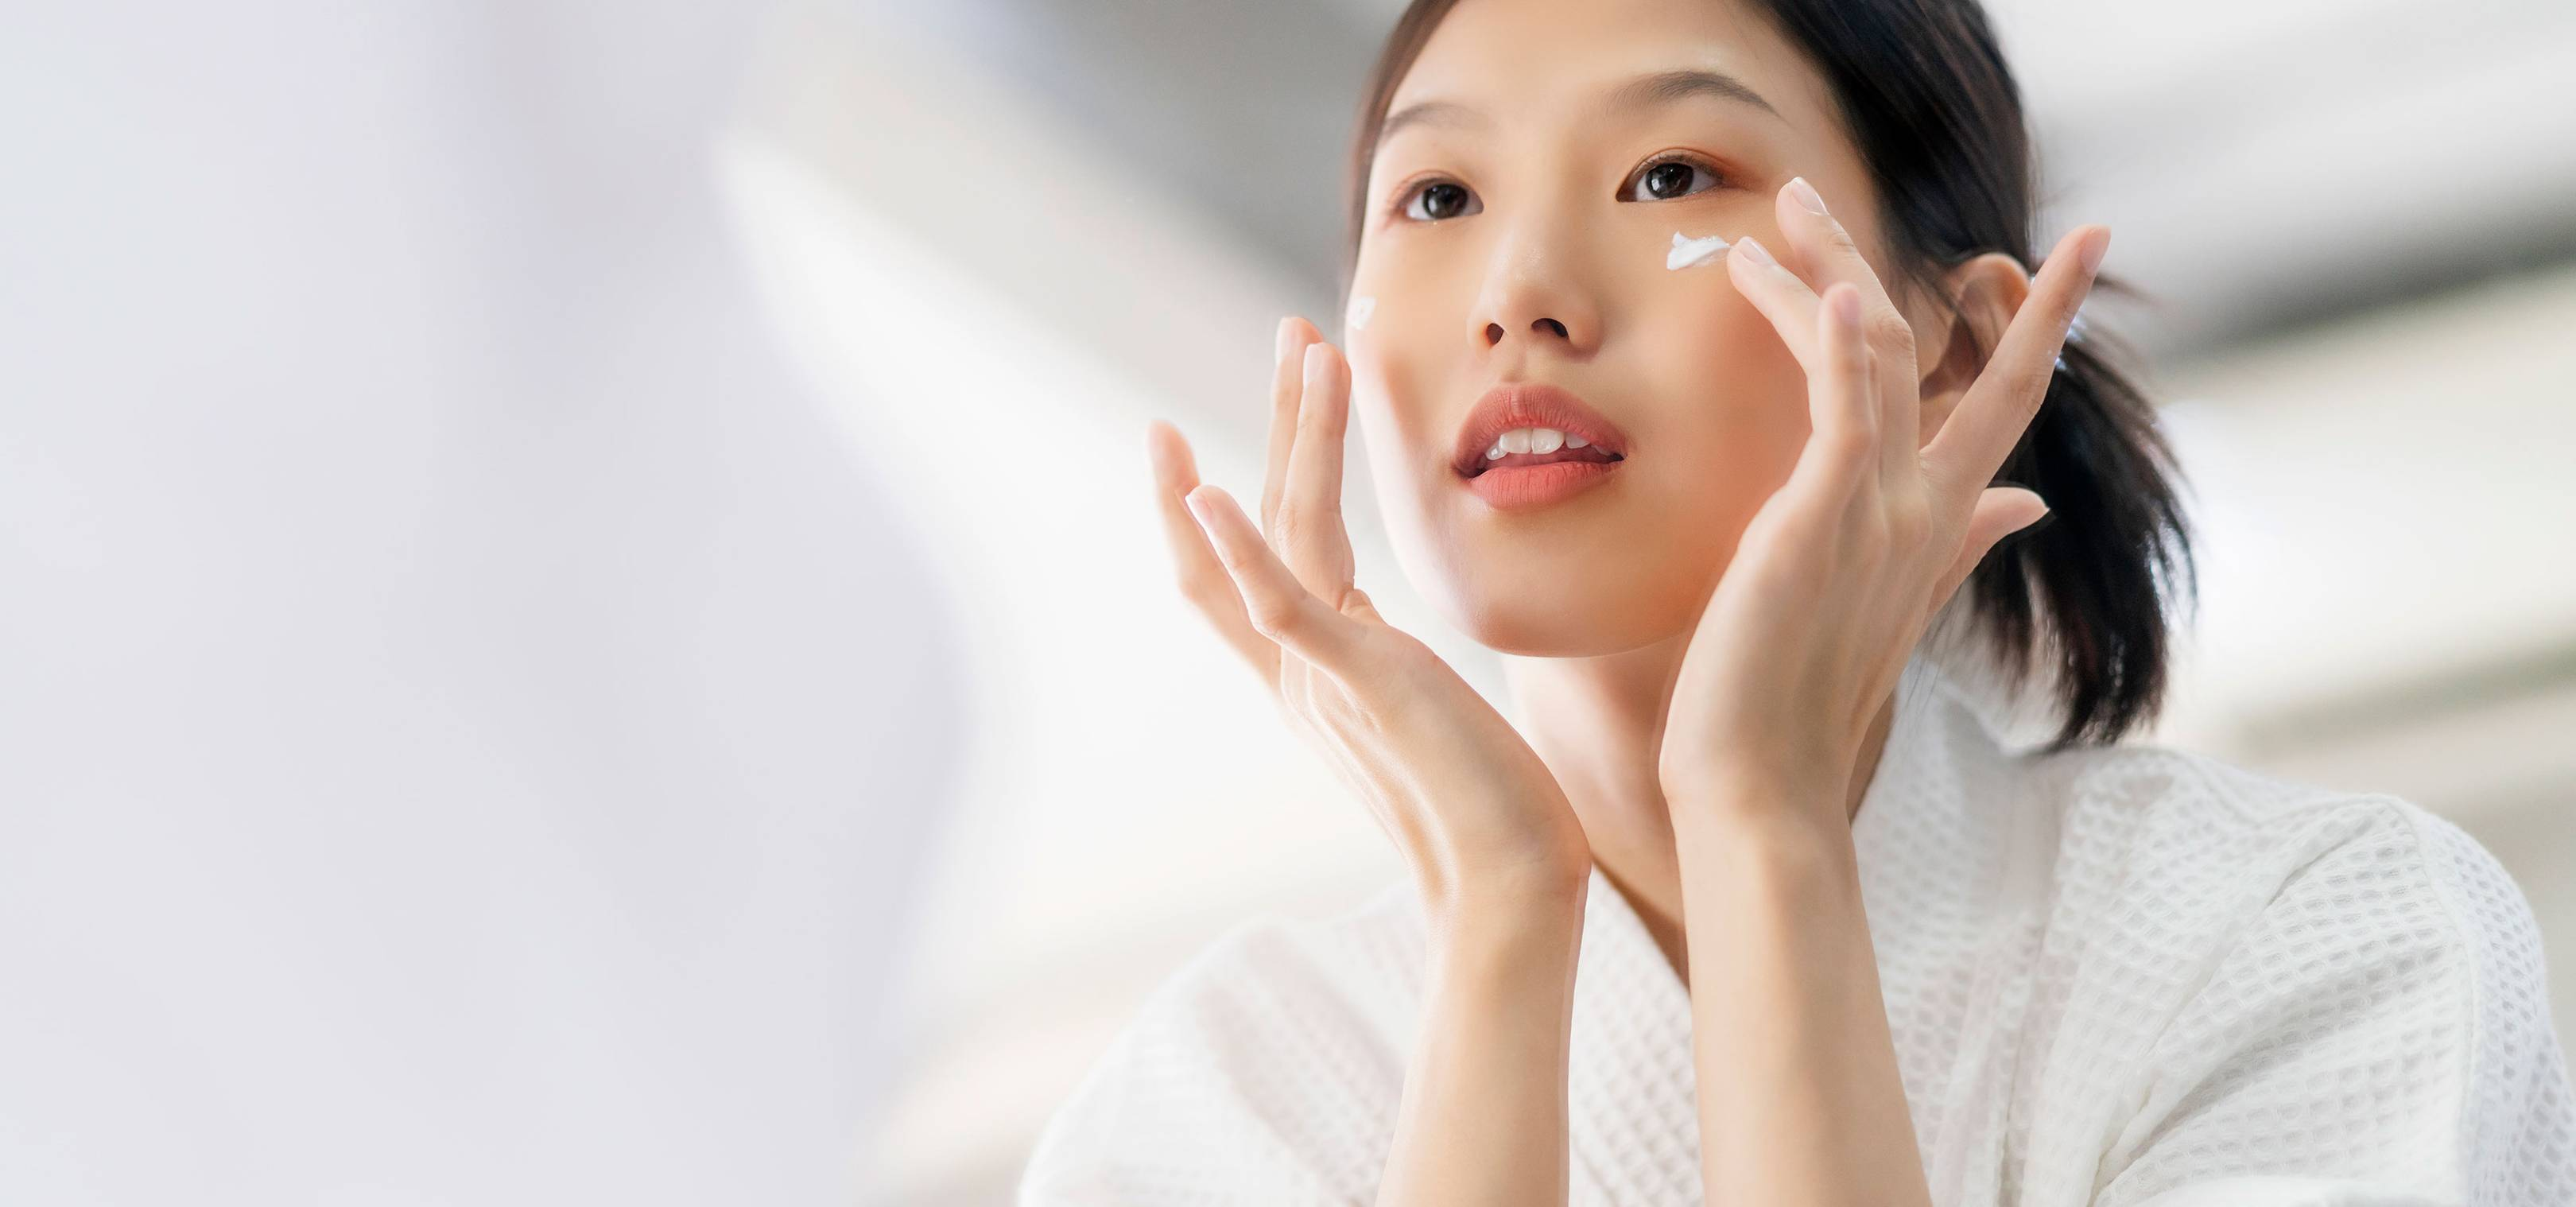 This is K-Beauty 2.0: The 15-minute 'slow beauty' regime for amazing skin & a boosted mood